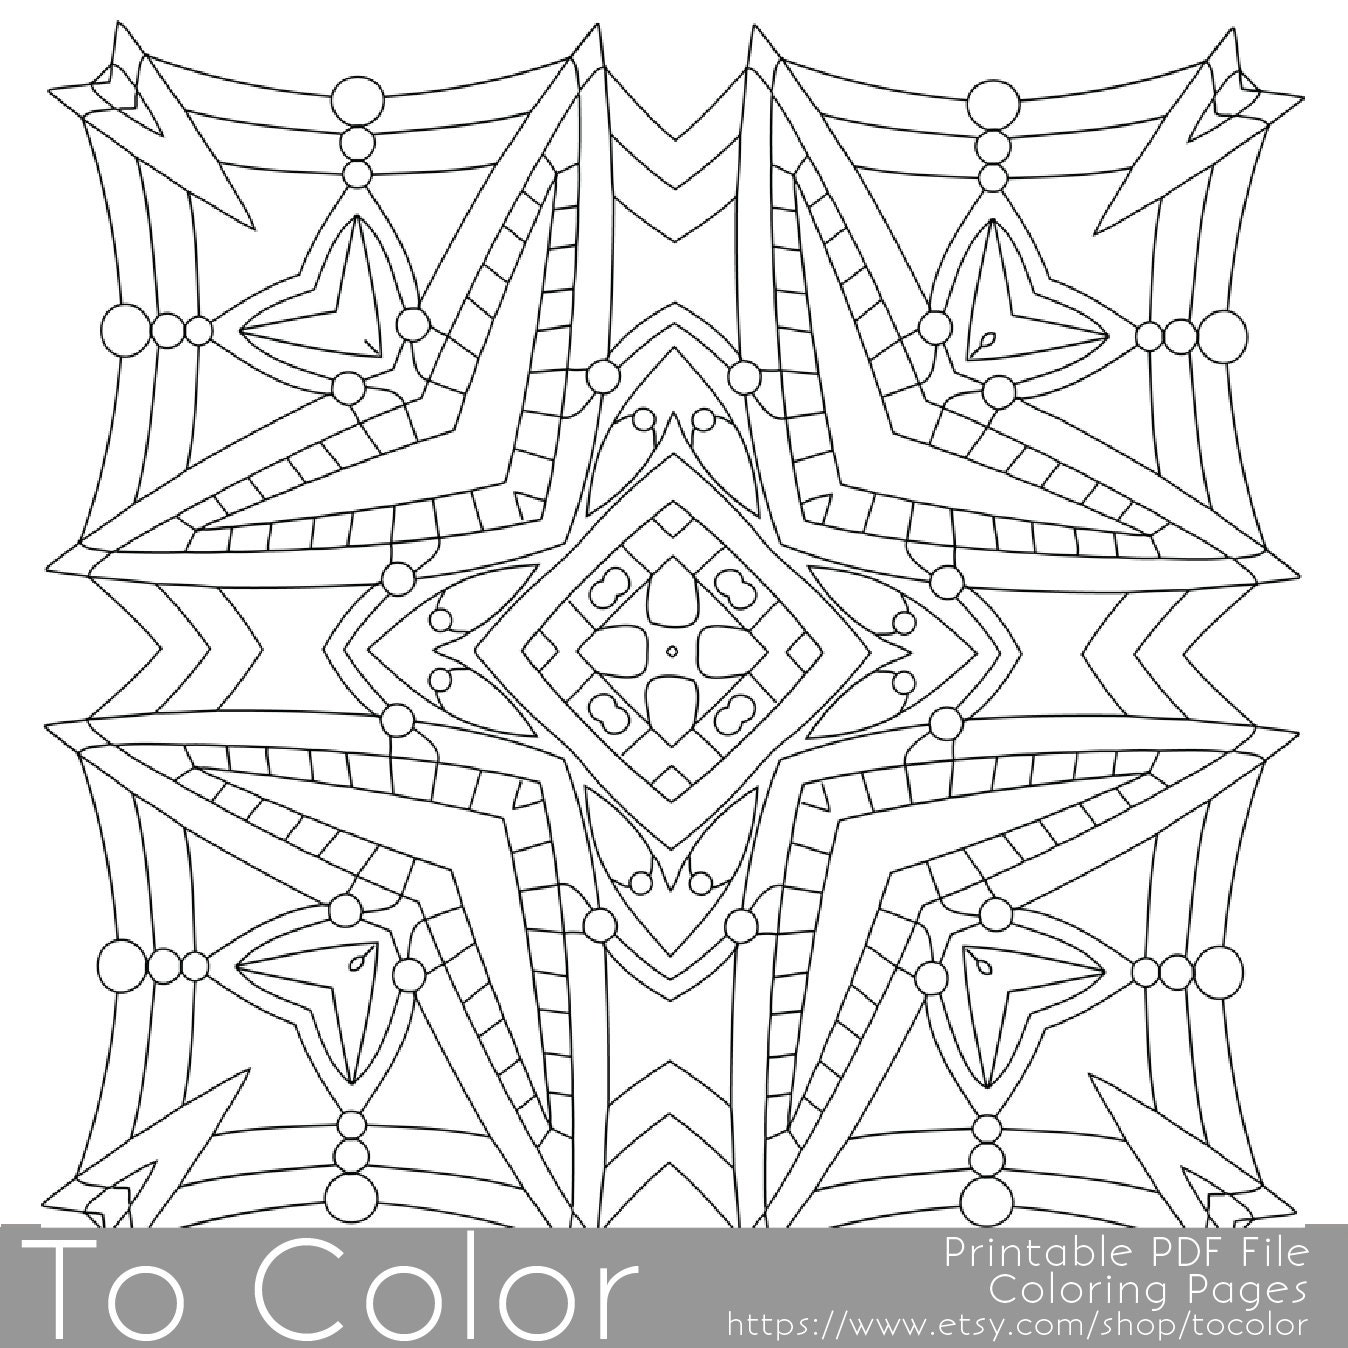 Printable Square Mandala Coloring Pages for Adults by ToColor